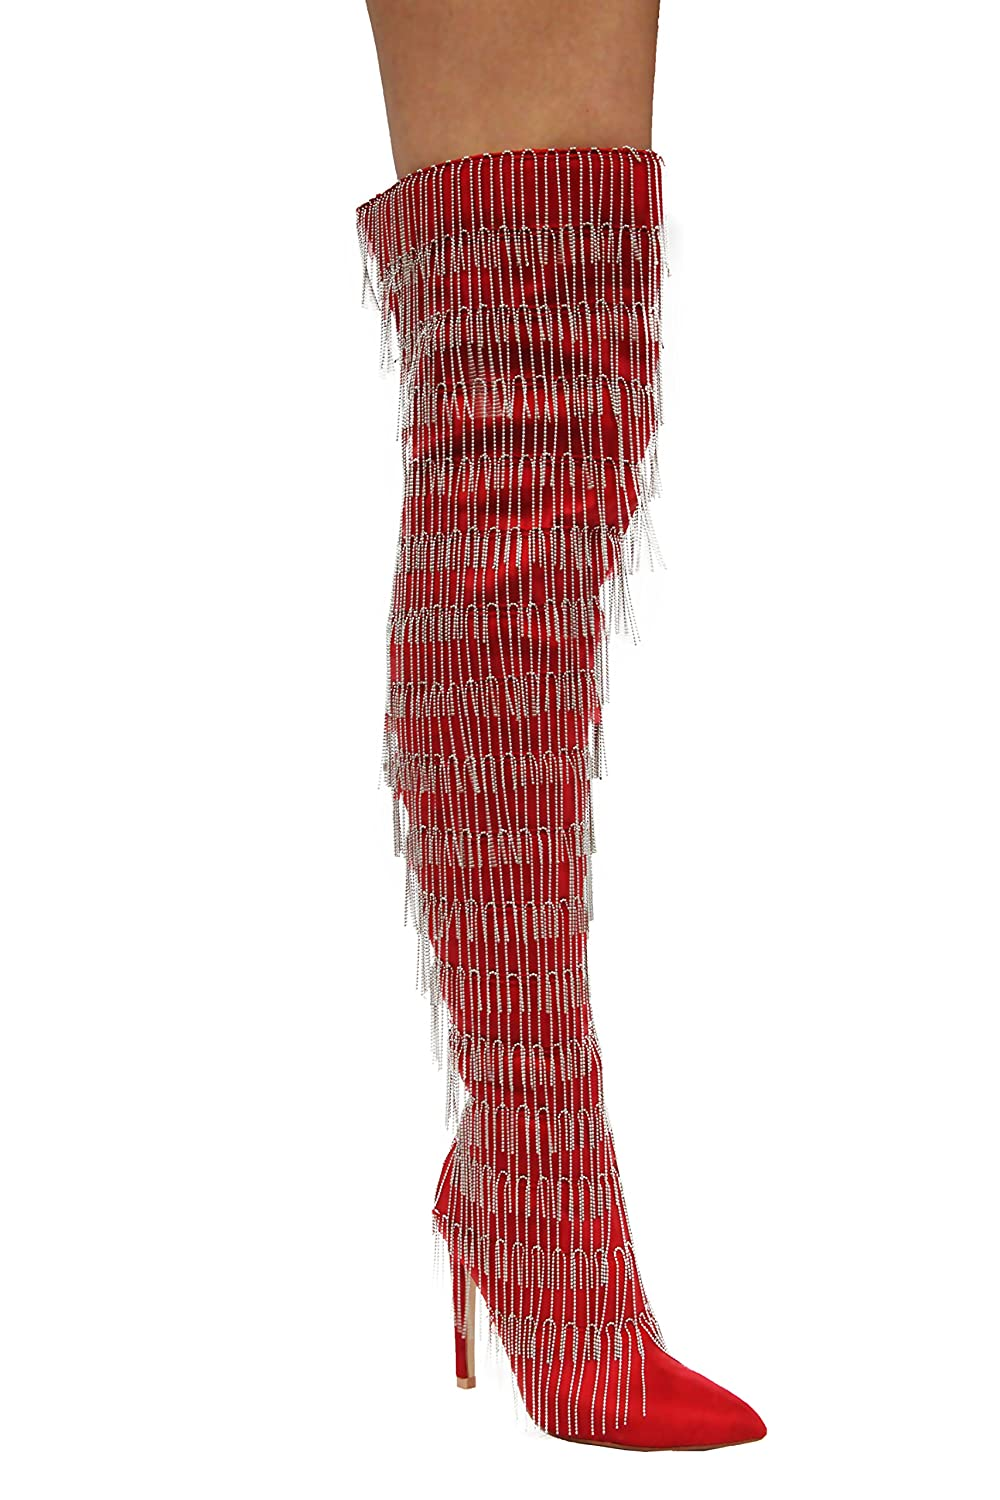 bd693d916d32 CAPE ROBBIN Gigi-138 Red Pointy Metal Silver Fringe Thigh High Stiletto  Boots